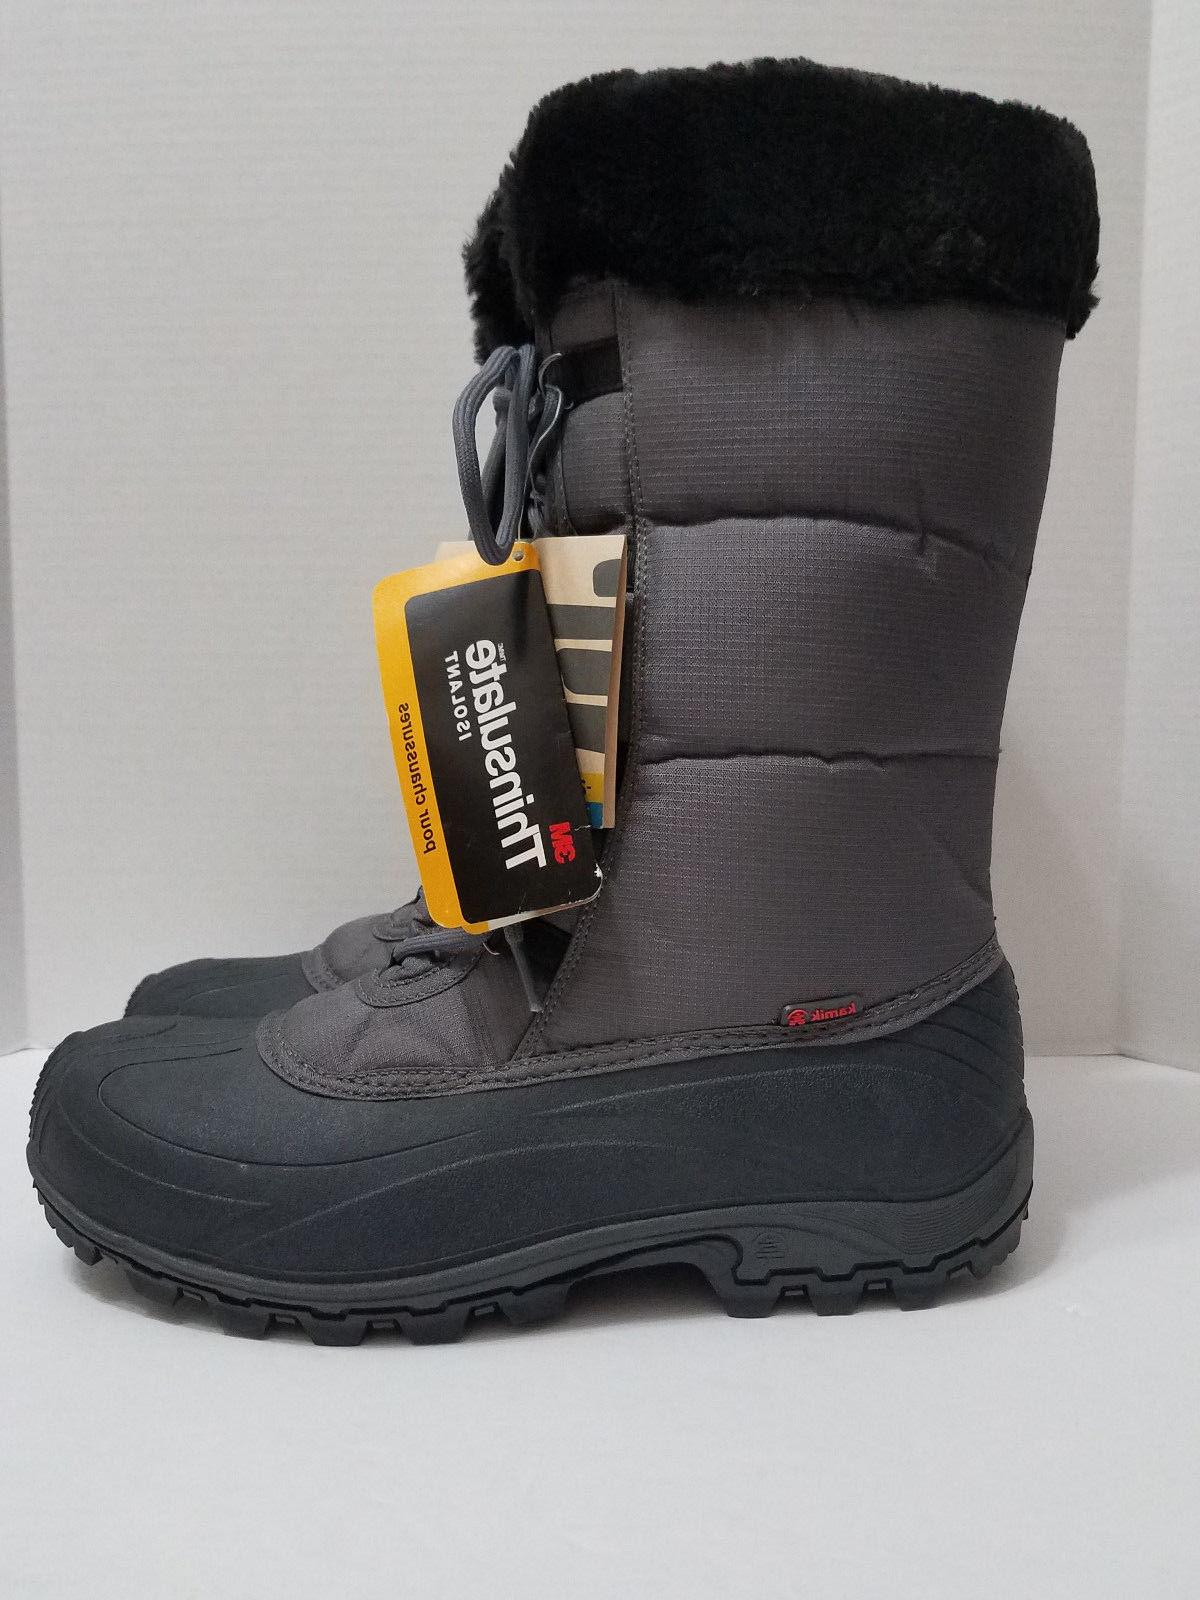 Kamik Rival Snow boot Thinsulate Impermeable Waterproof Sz